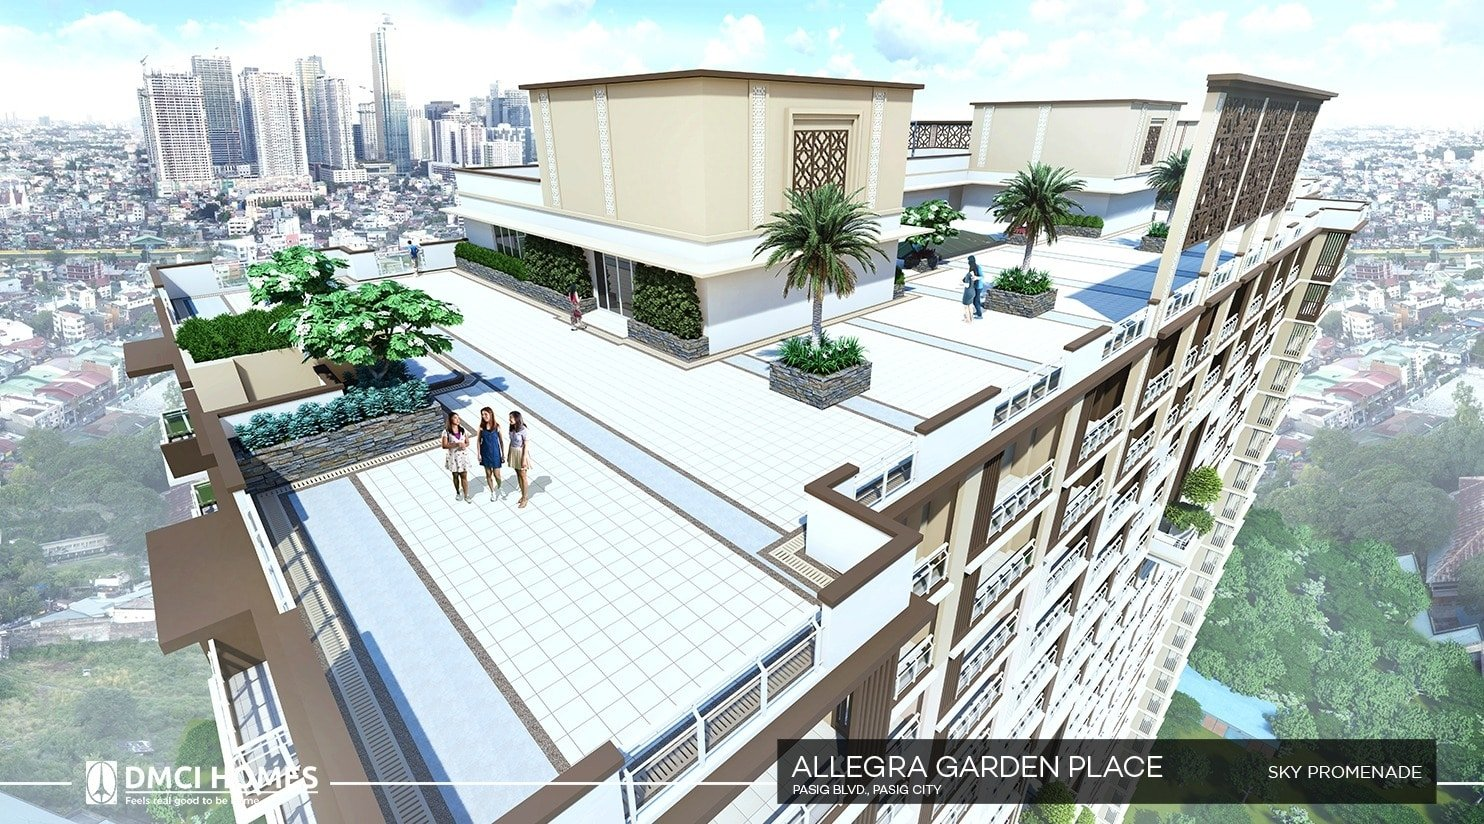 Spacious SKY PROMENADE at ALLEGRA buildings.